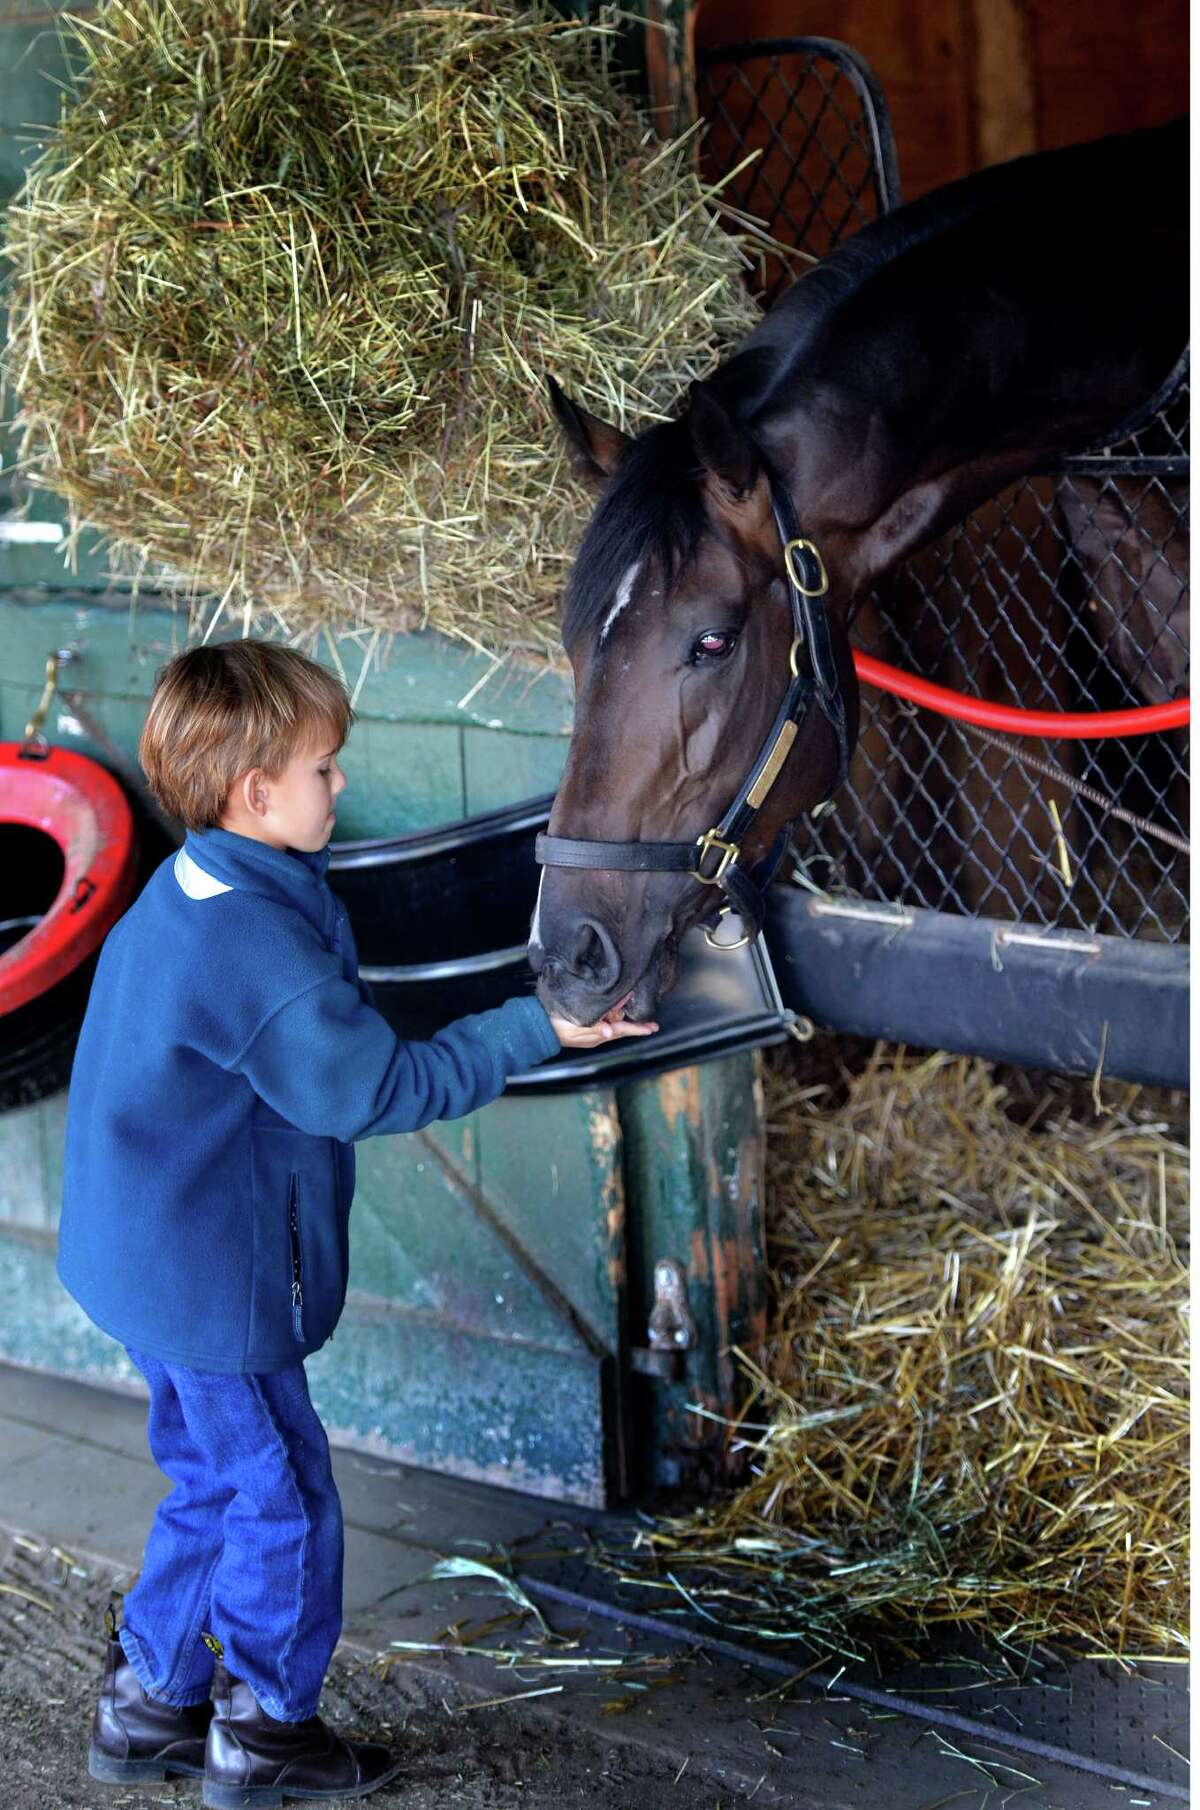 Ogden Mills Phipps, 6, gives a horse treat to Travers entrant Mr. Speaker in the Phipps Stables barn Monday morning, Aug. 18, 2014, at the Oklahoma Training Center in Saratoga Springs, N.Y. (Skip Dickstein/Times Union)